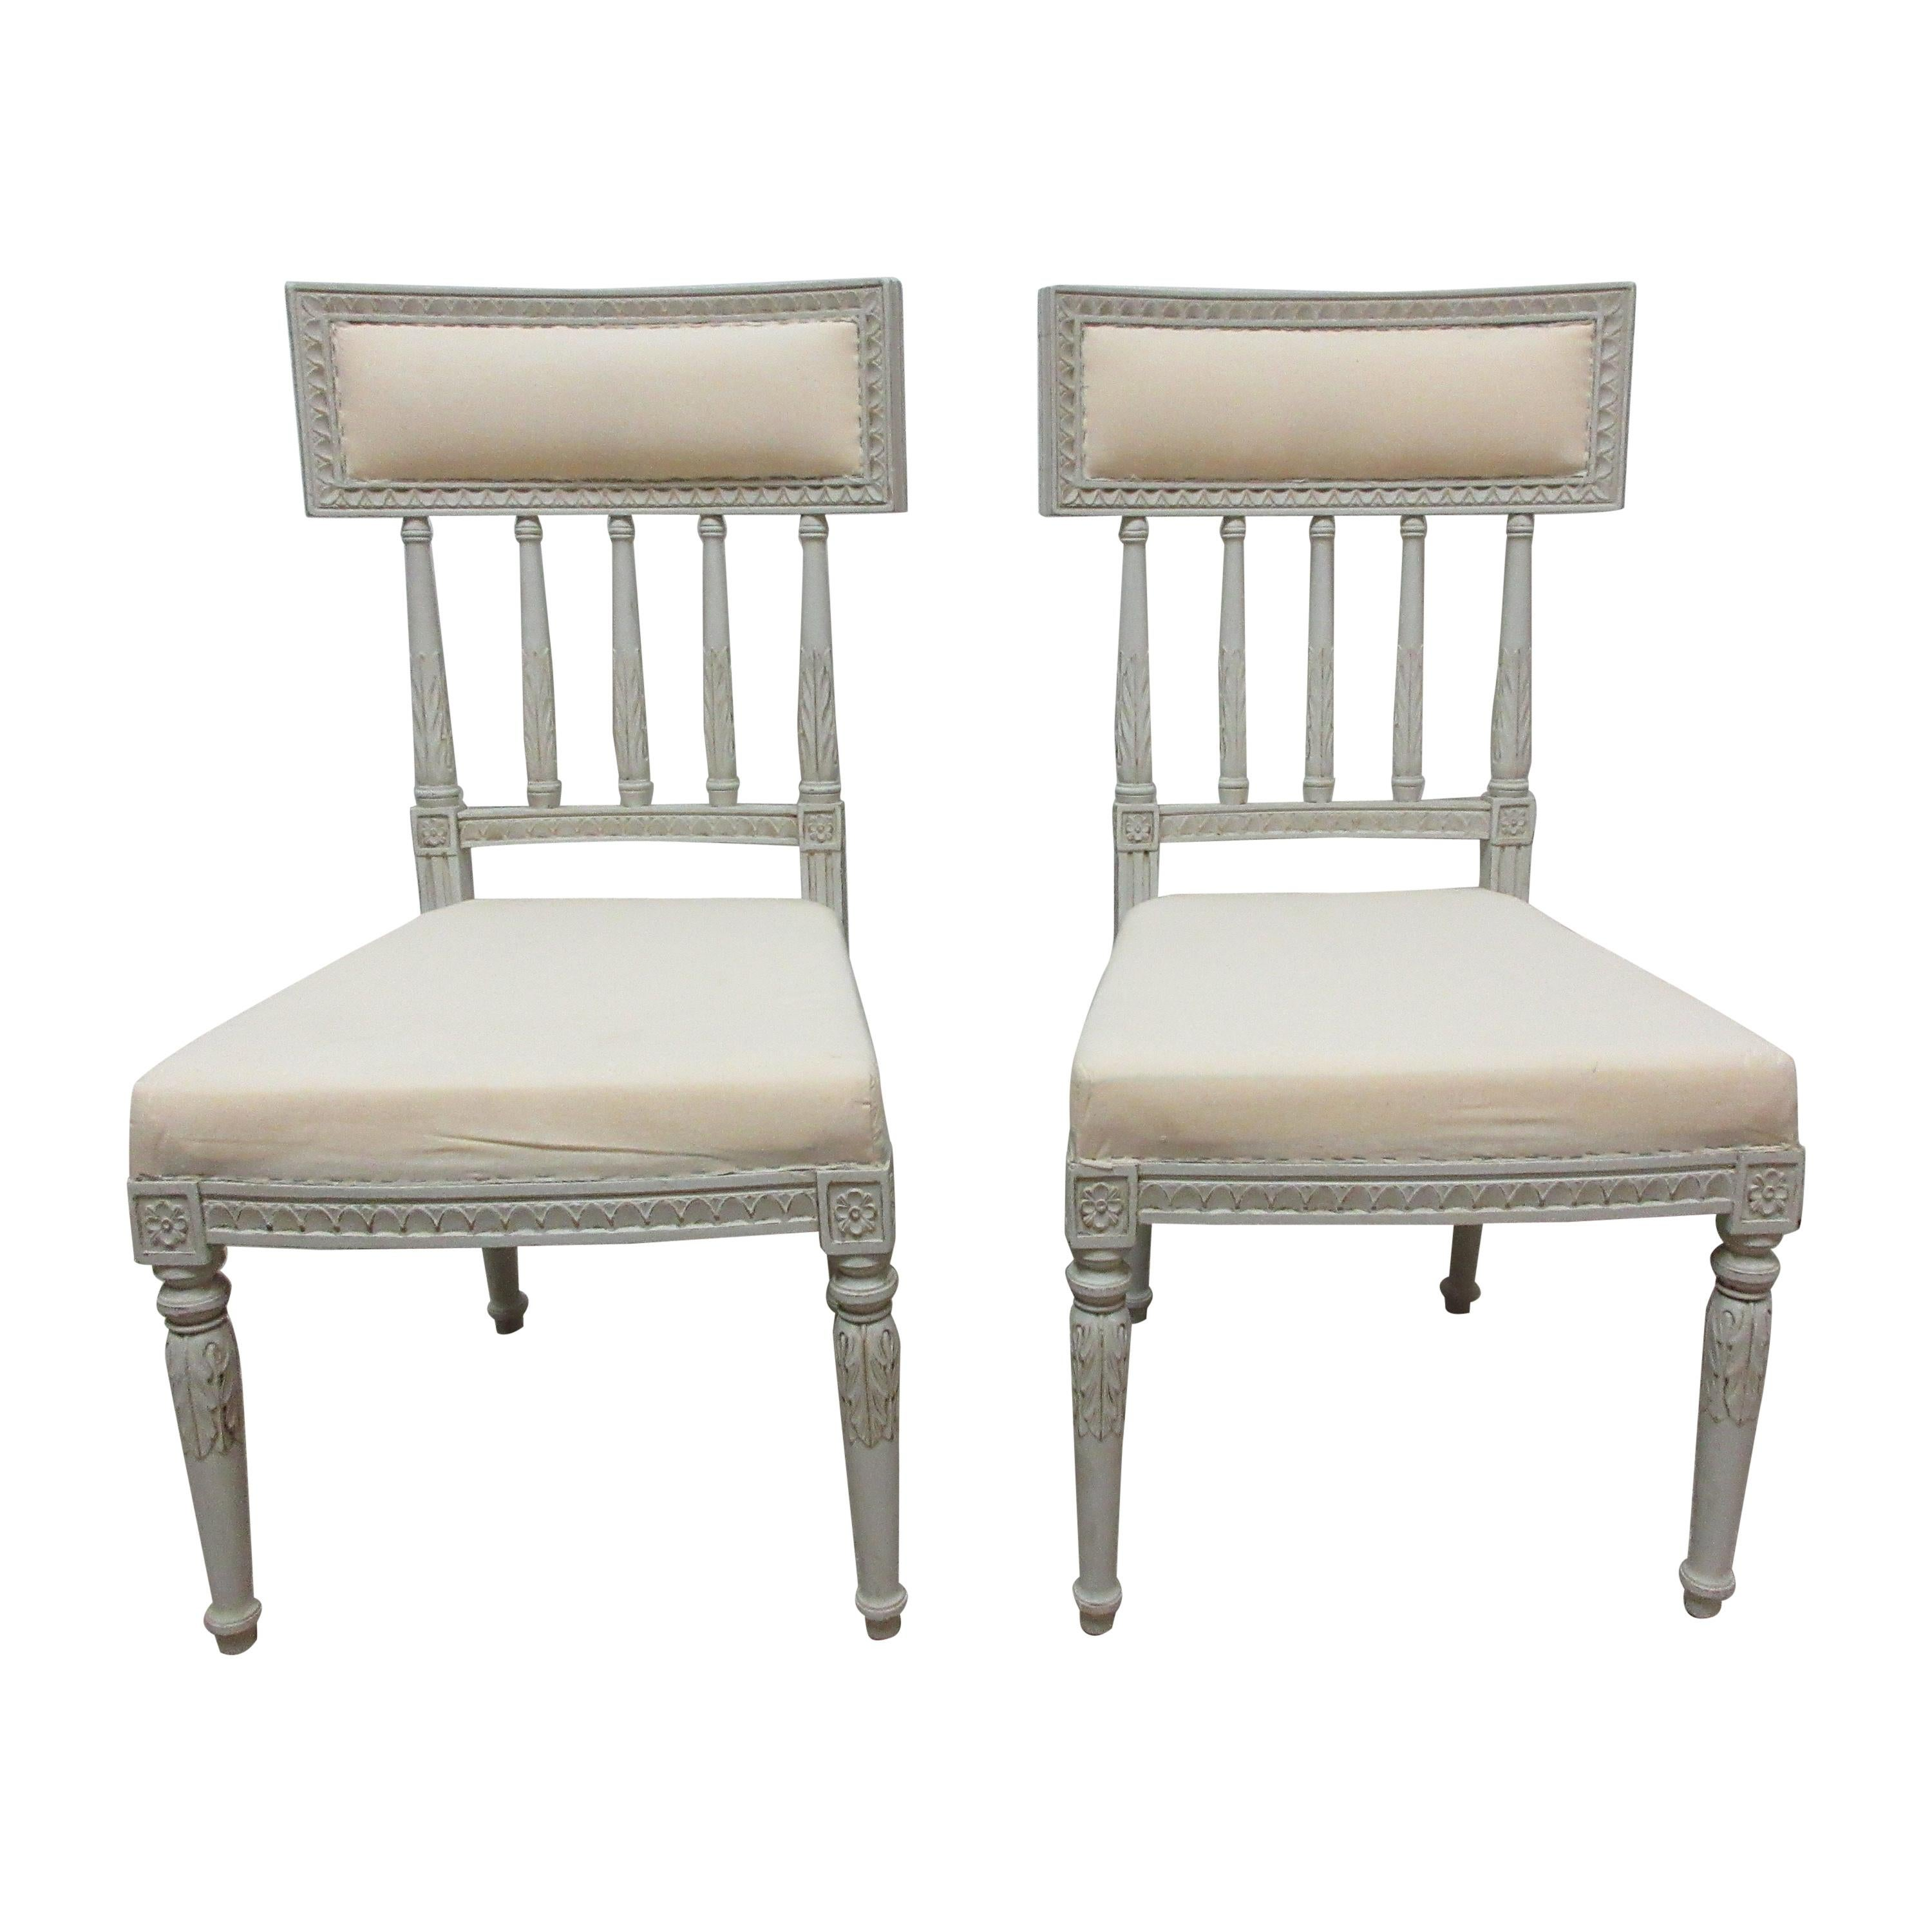 2 Swedish Gustavian Side Chairs